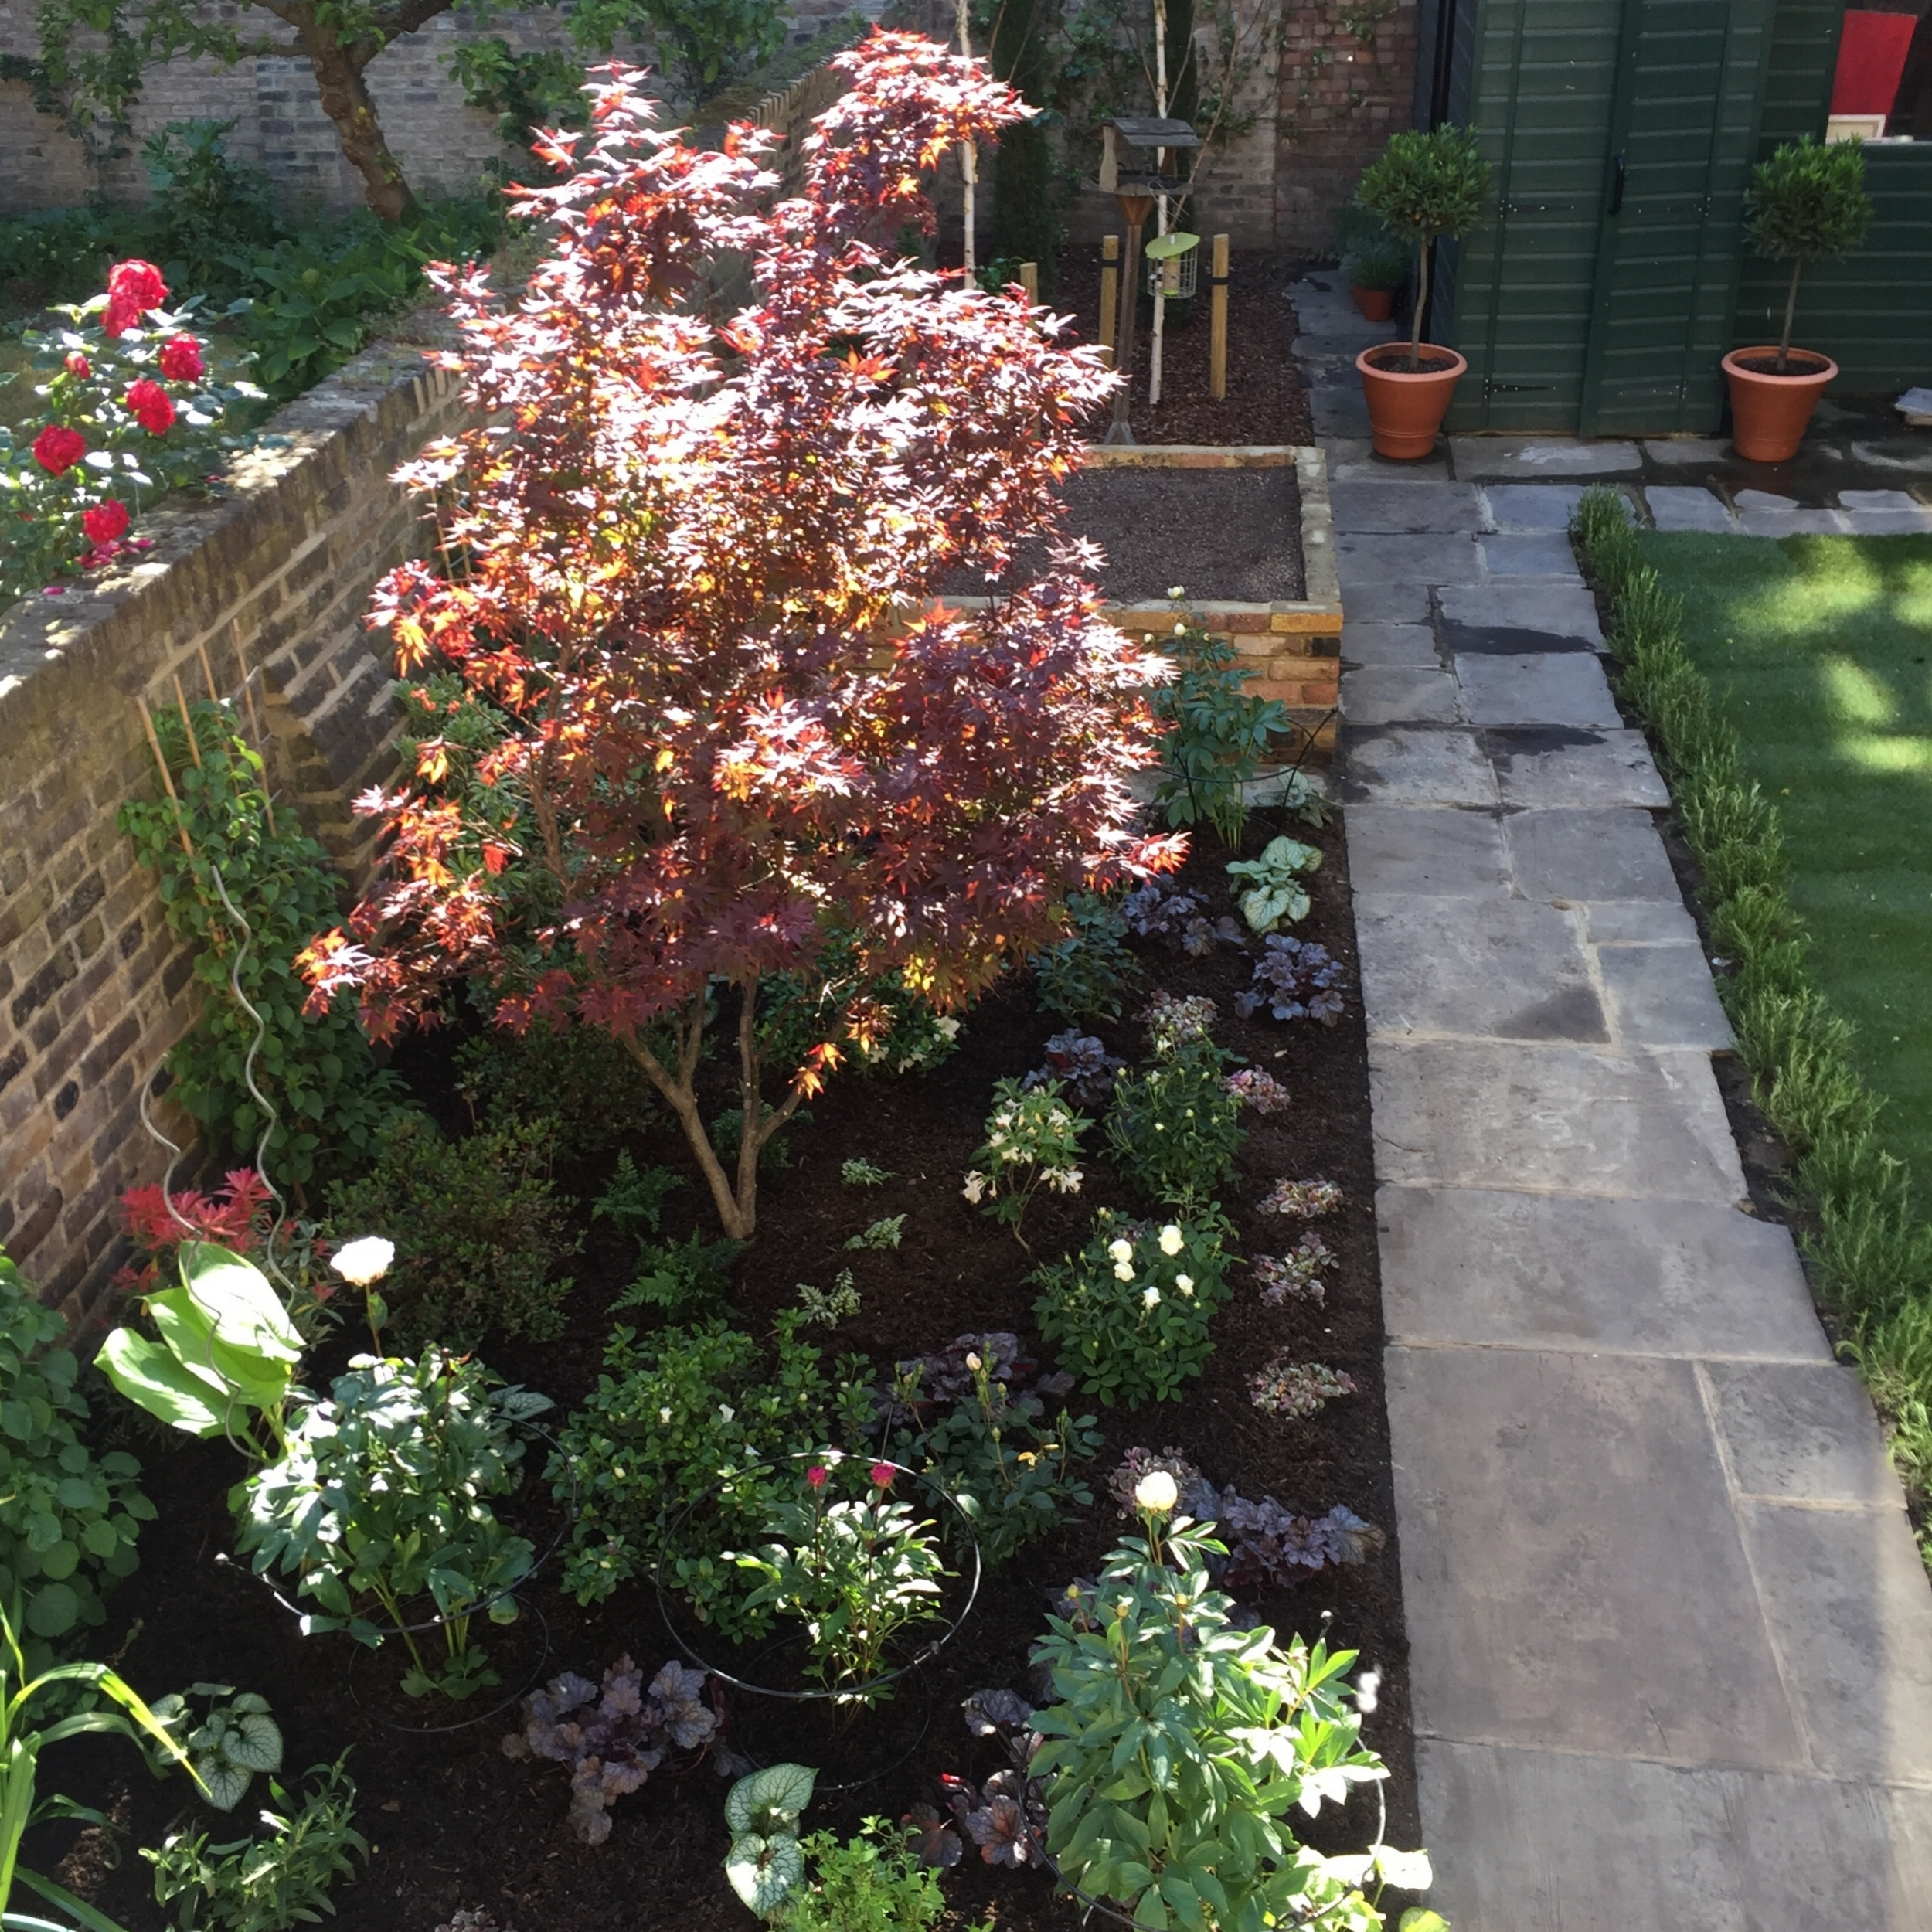 De Beauvoir  A unique city garden. Fusing concepts taken from classic Italian and Japanese gardens. formal, intricate yet spacious. Features in this garden include a greengage cordon, a Himalayan birch grove backed with Italian cypress, a rosemary hedge surrounding the lawn and a highly colourful red and white flower bed centred with a mature Japanese maple.